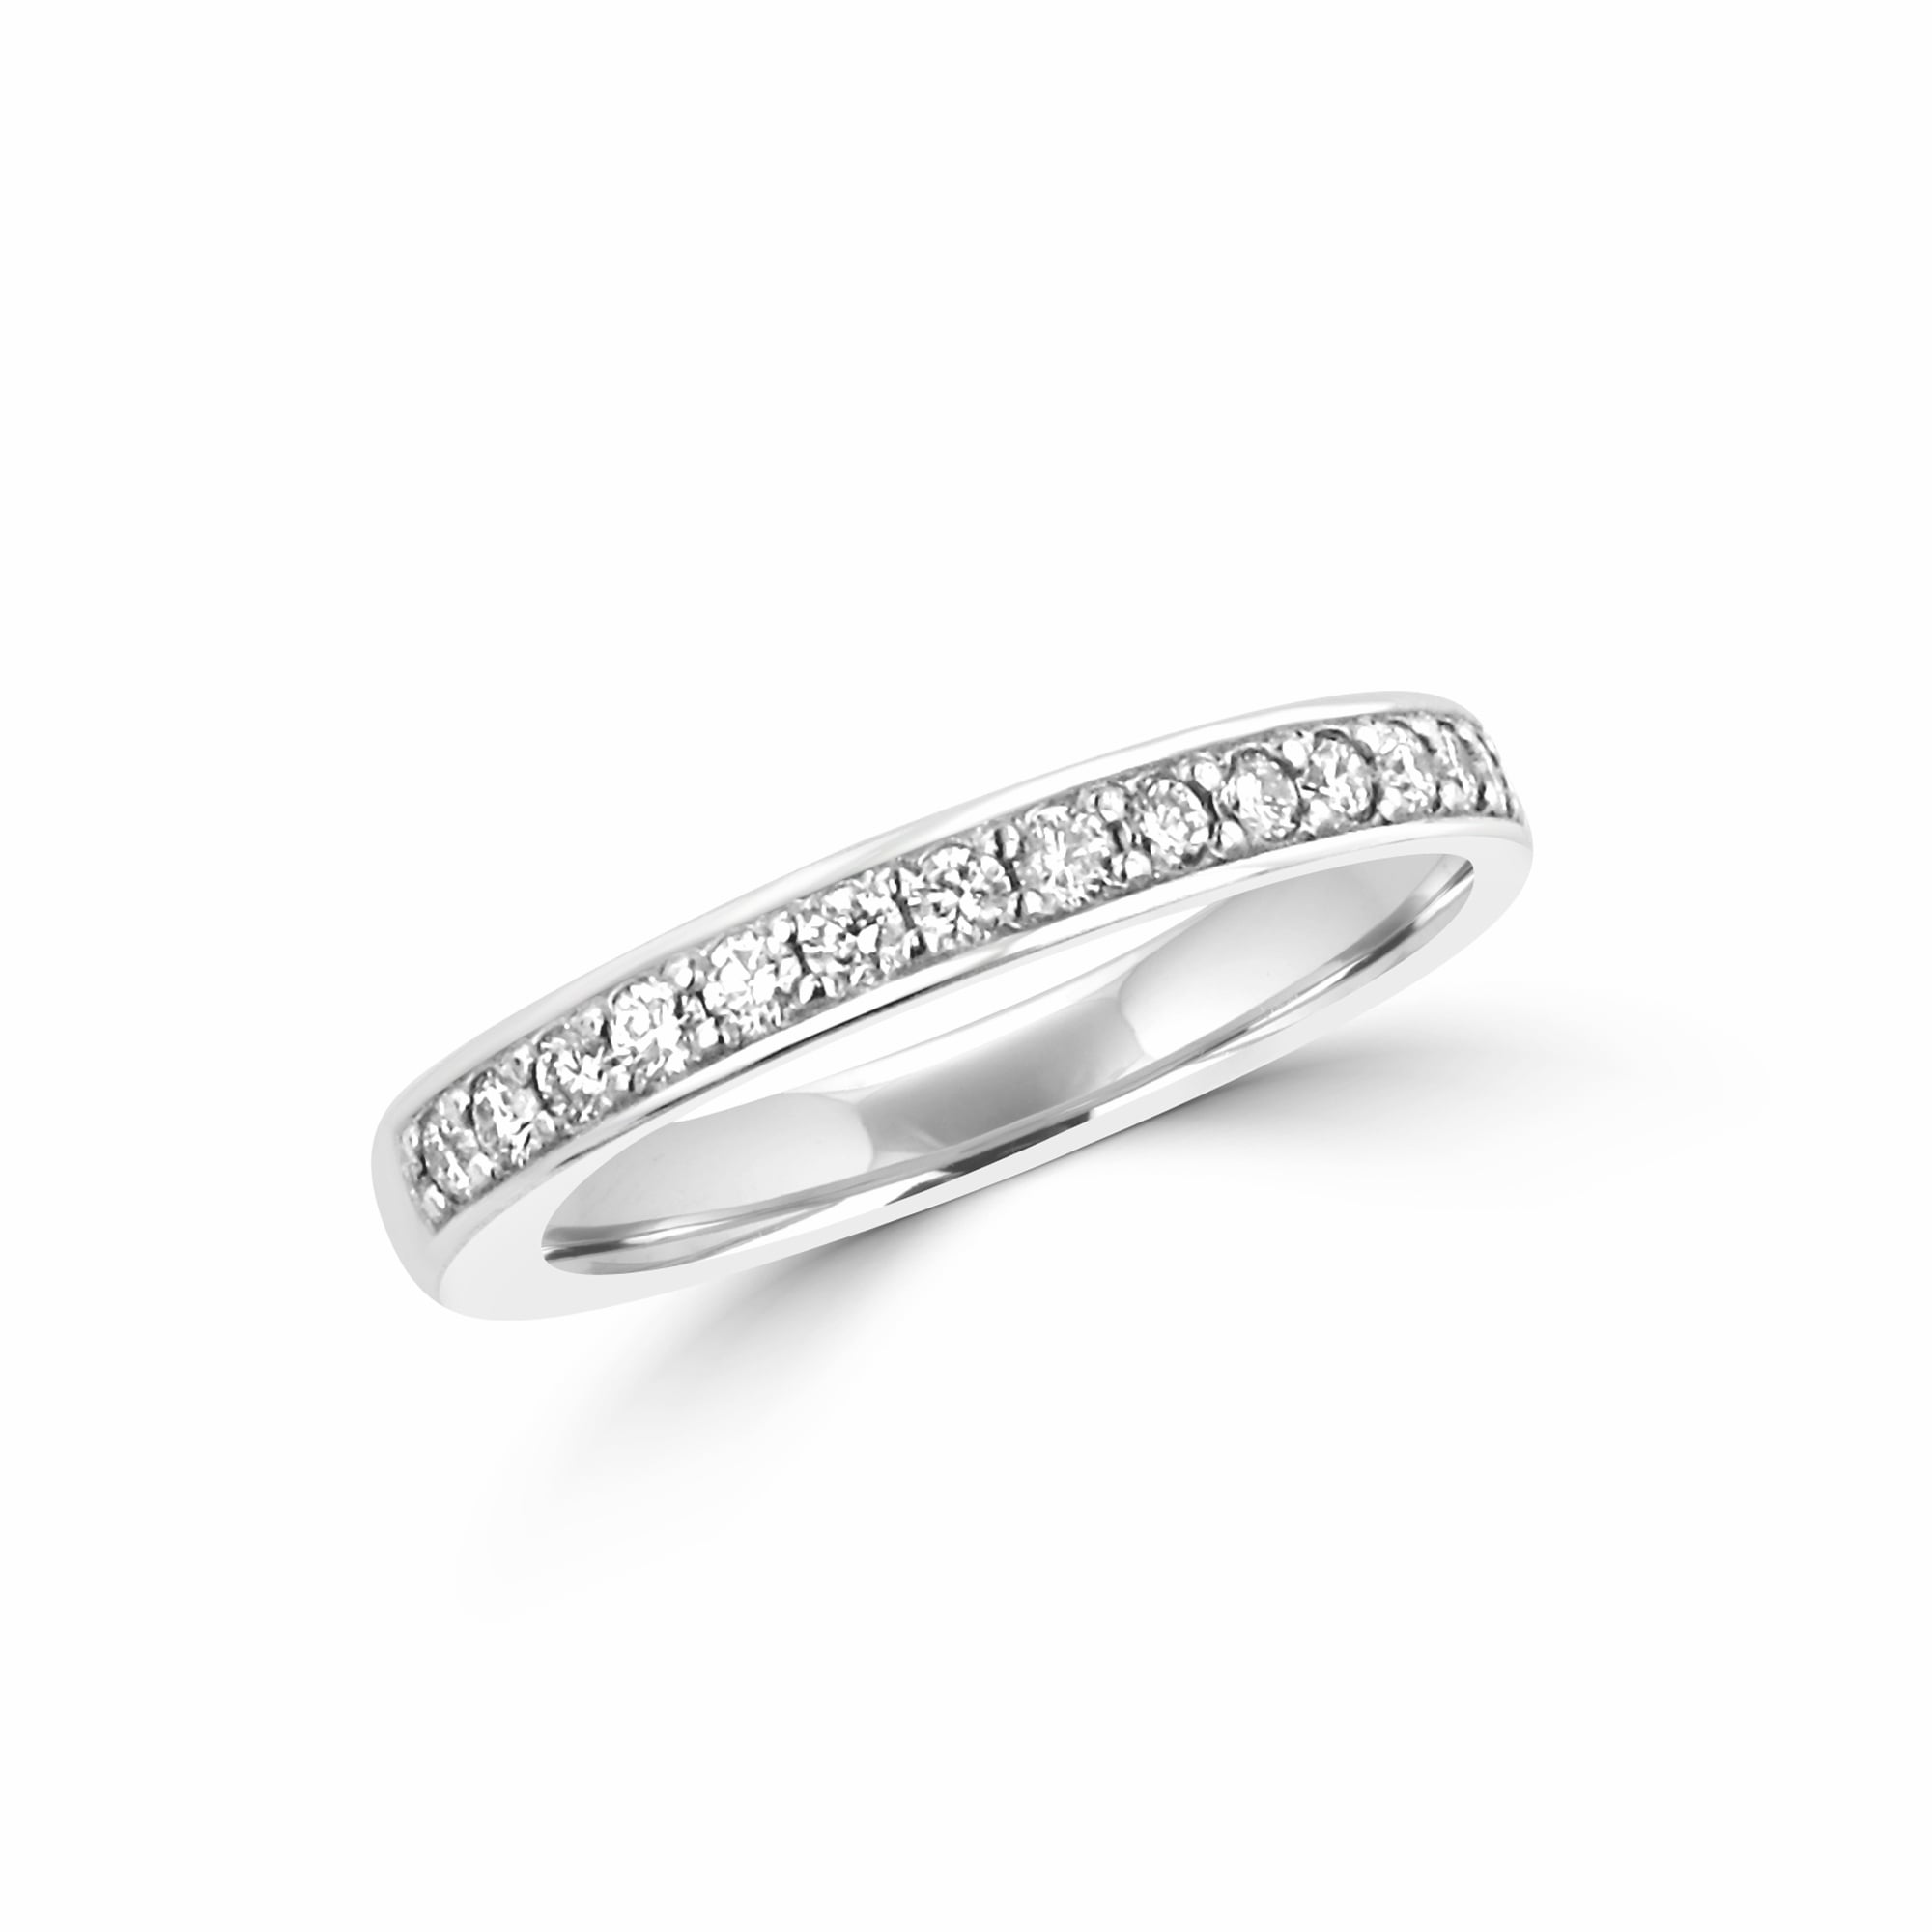 atdisability wedding collection of rings for anniversary bands diamond gold your com cheap awesome sets band and